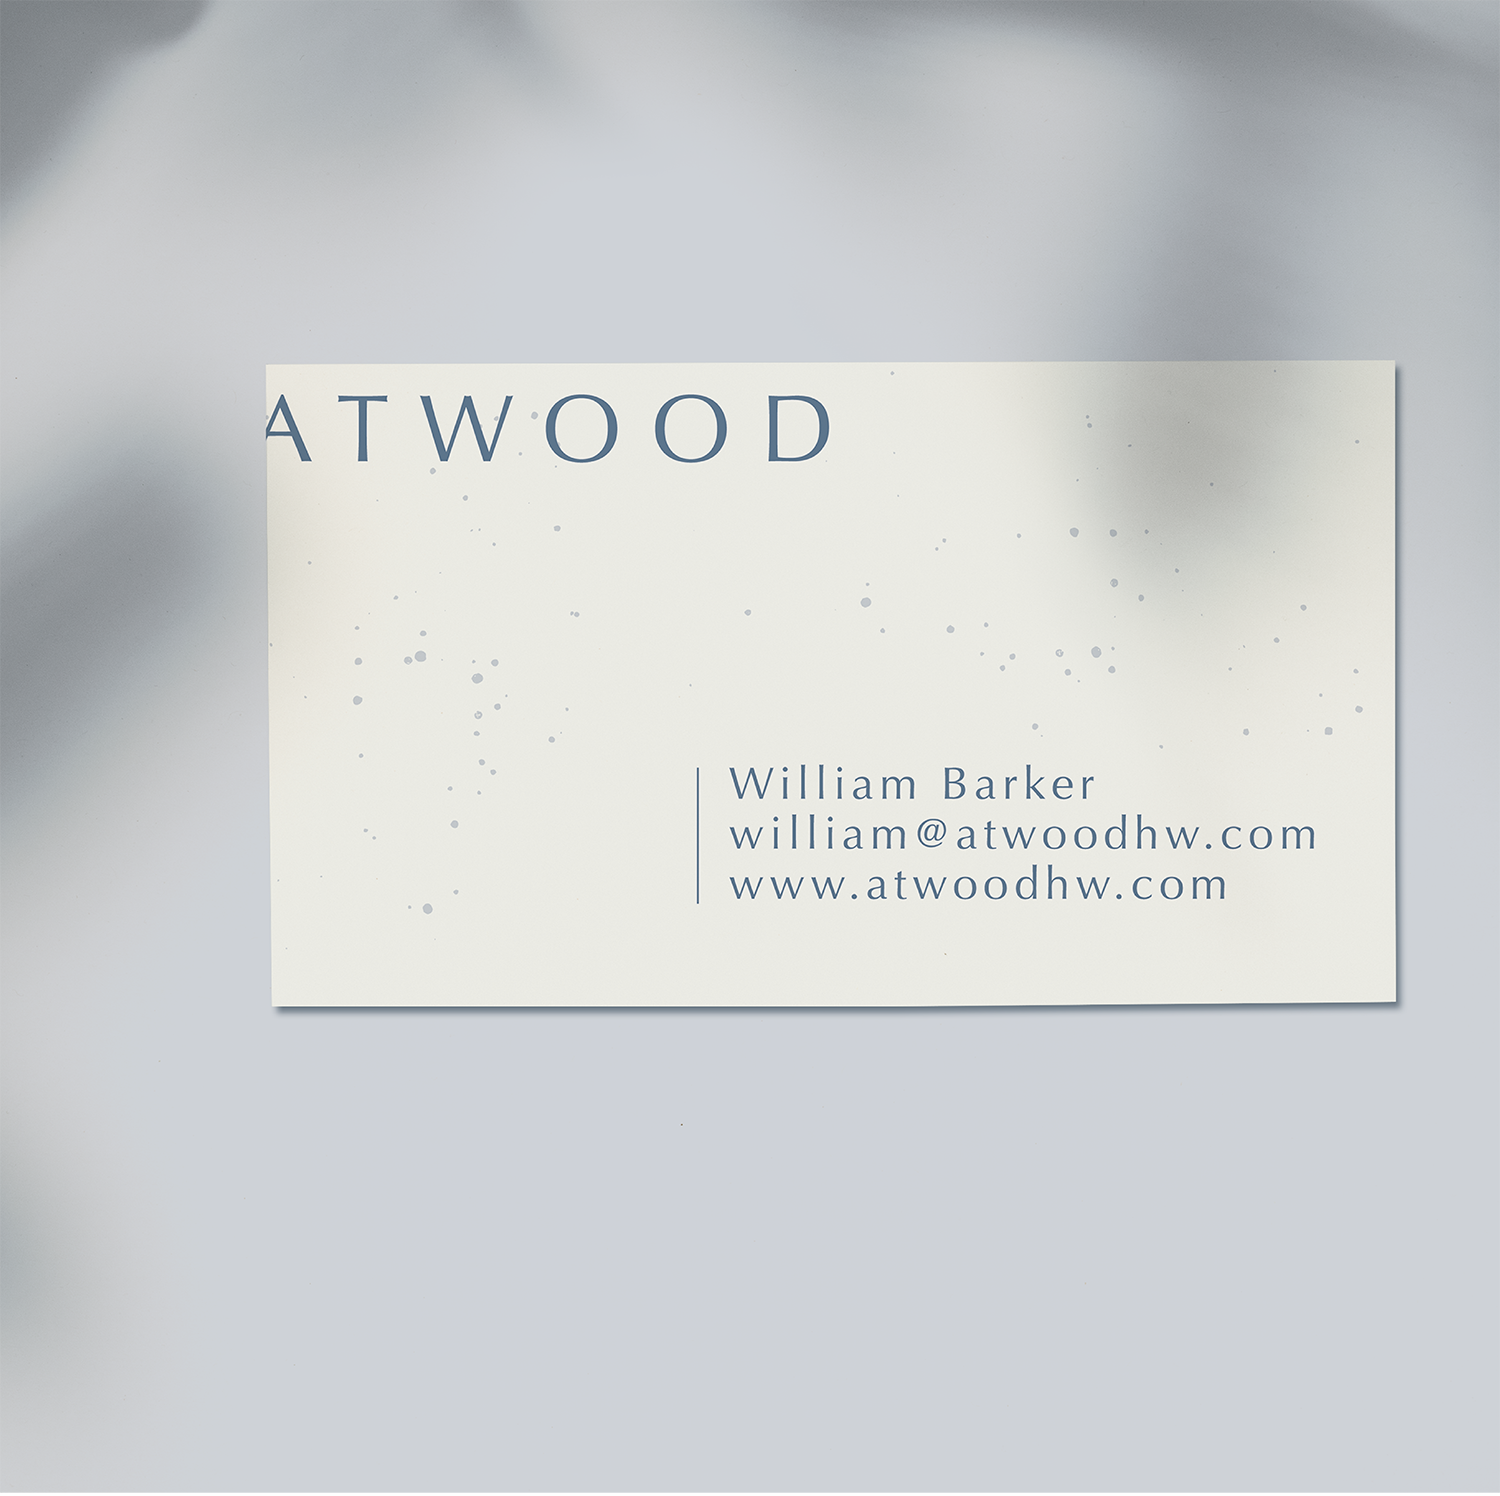 atwood square-01 (Conflicted copy from Katie's MacBook Pro on 2019-02-23).png